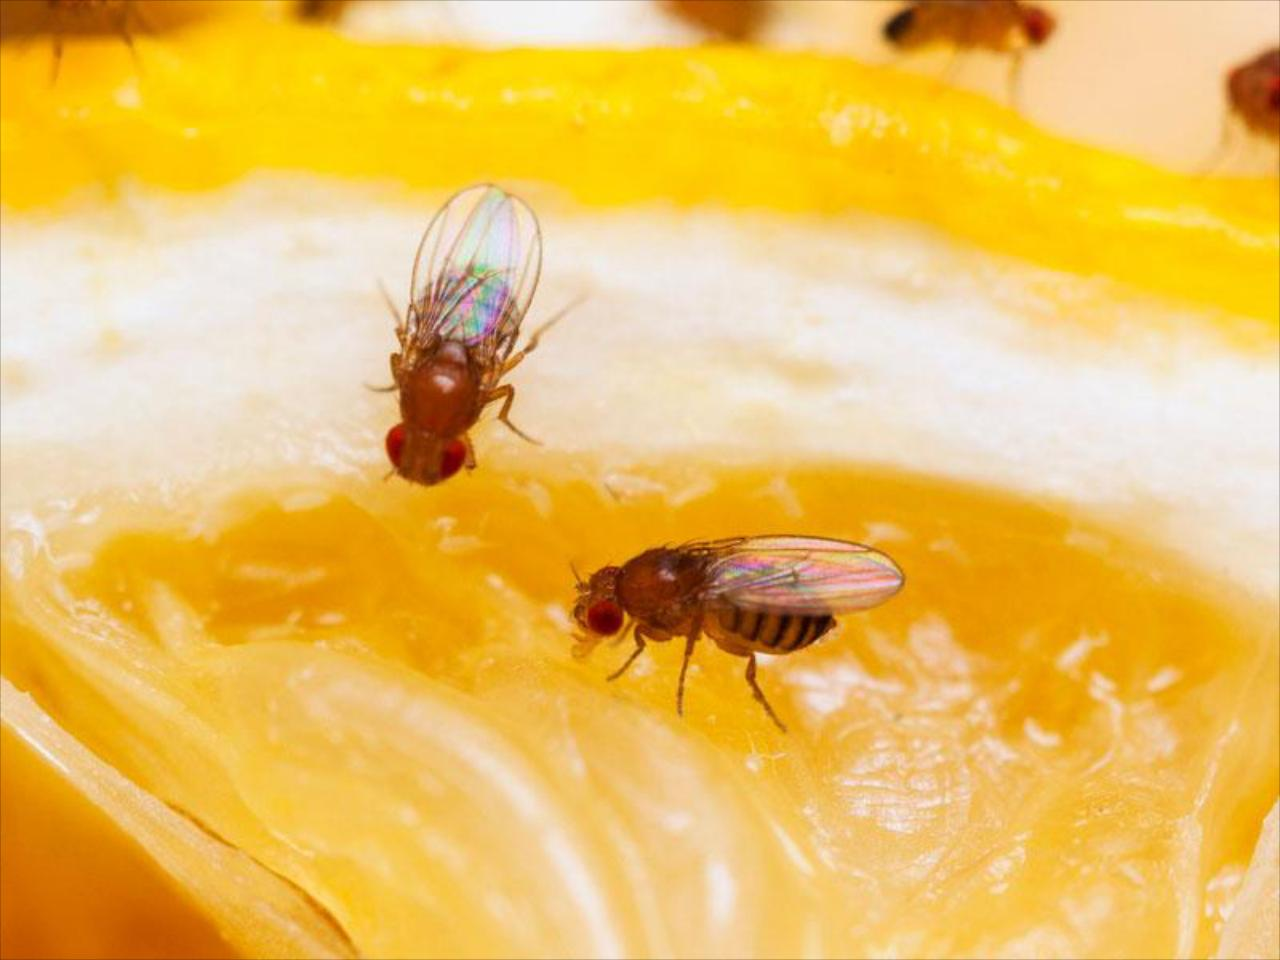 Fruit Fly Service